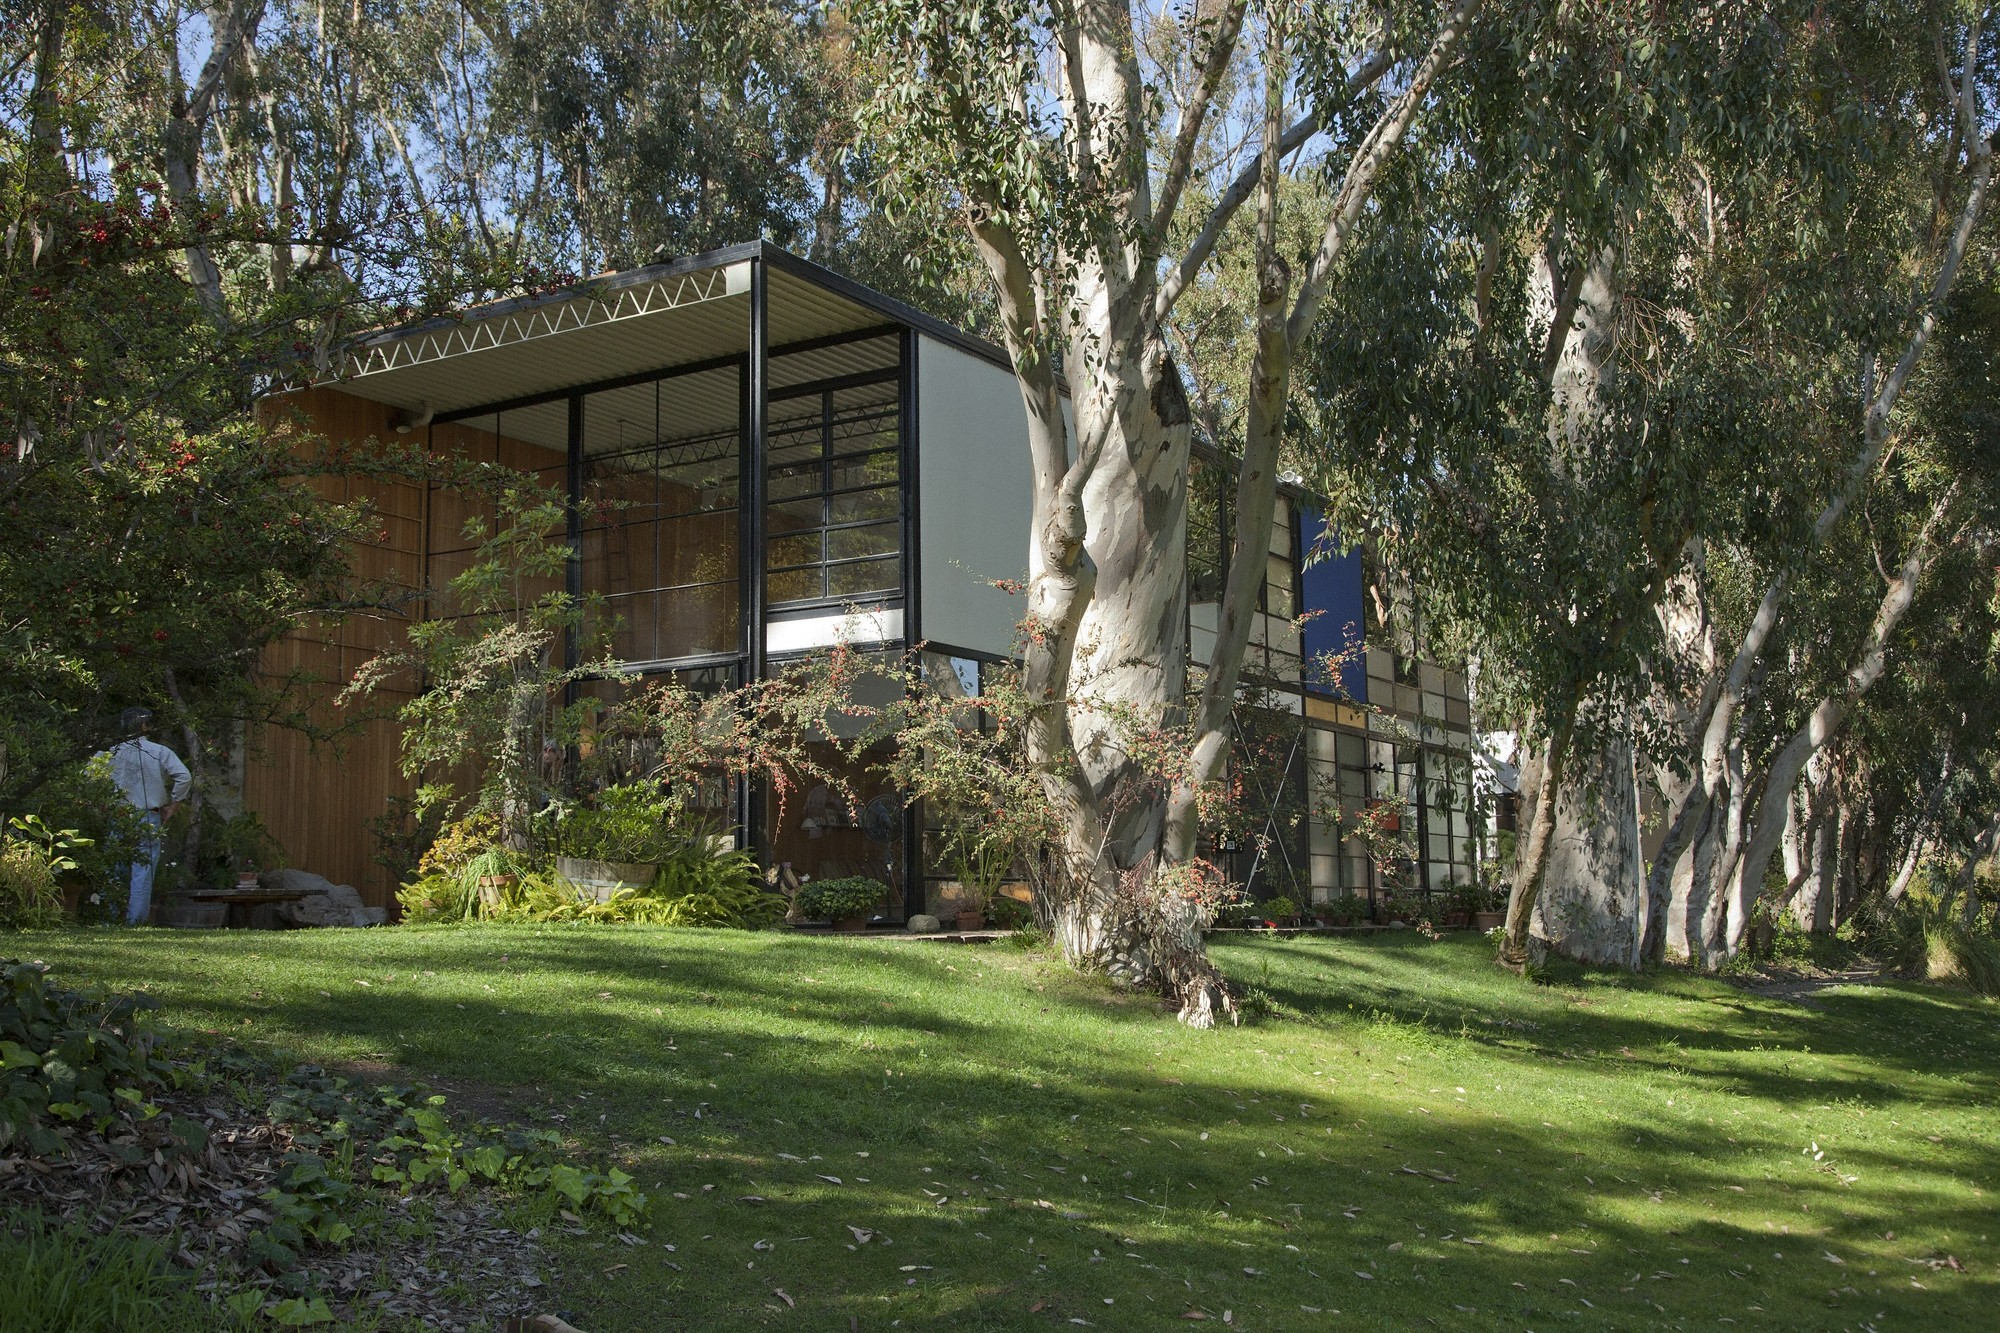 The Indicator: Pilgrimage, Experiencing the Eames House, © J. Paul Getty Trust